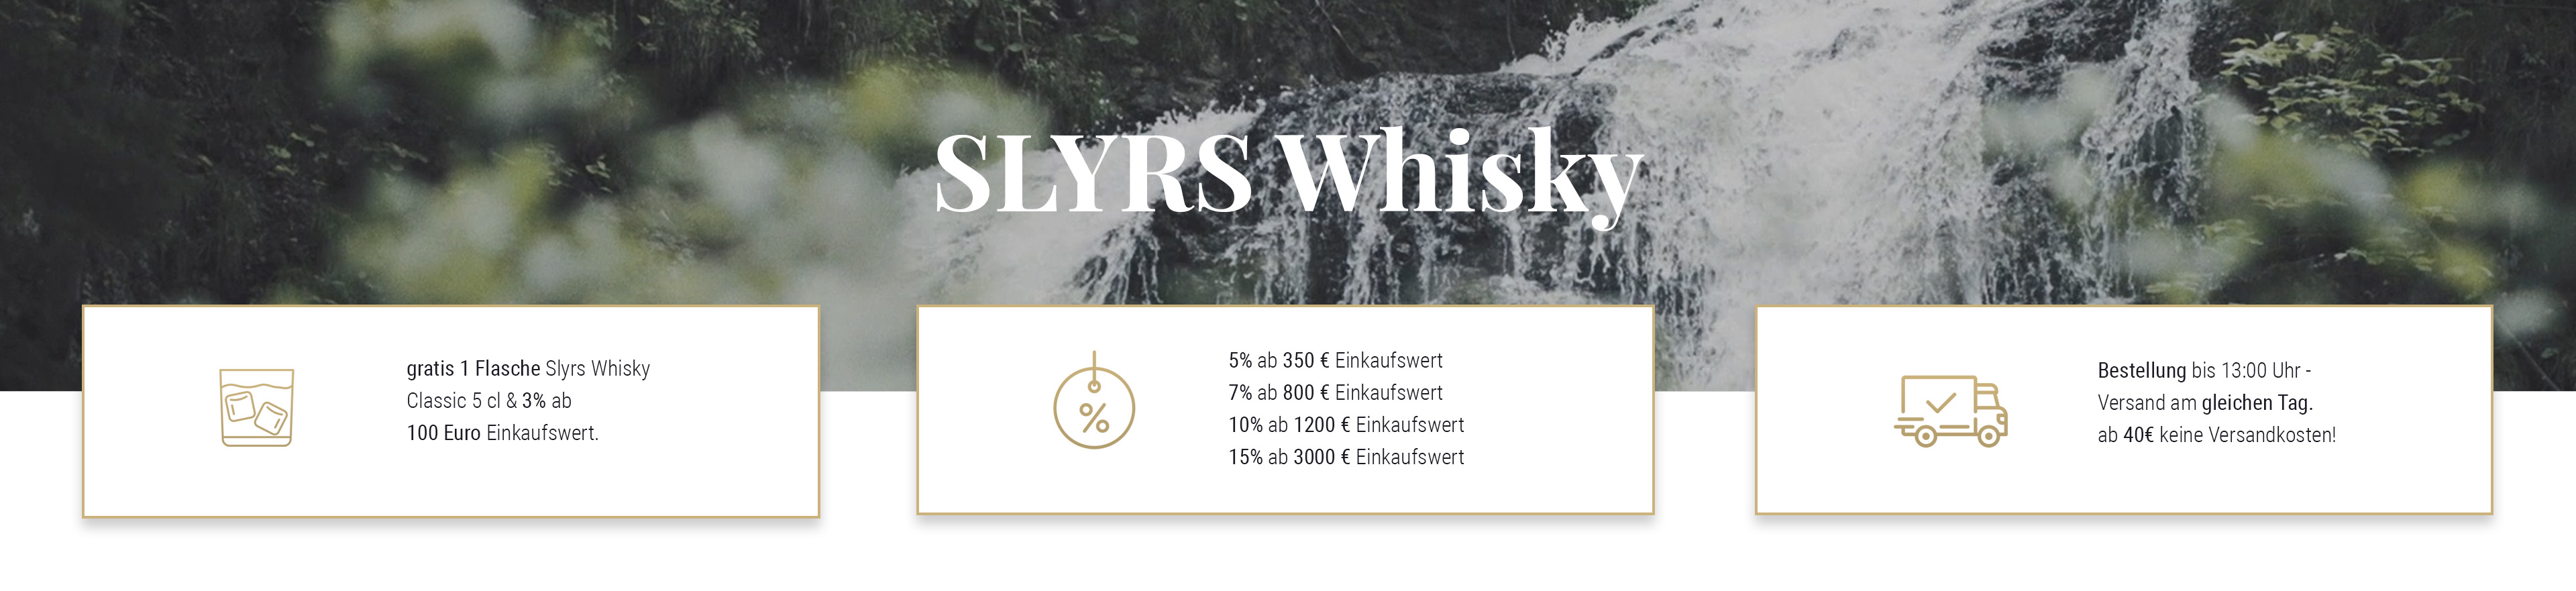 Slyrs Whisky Shop Banner